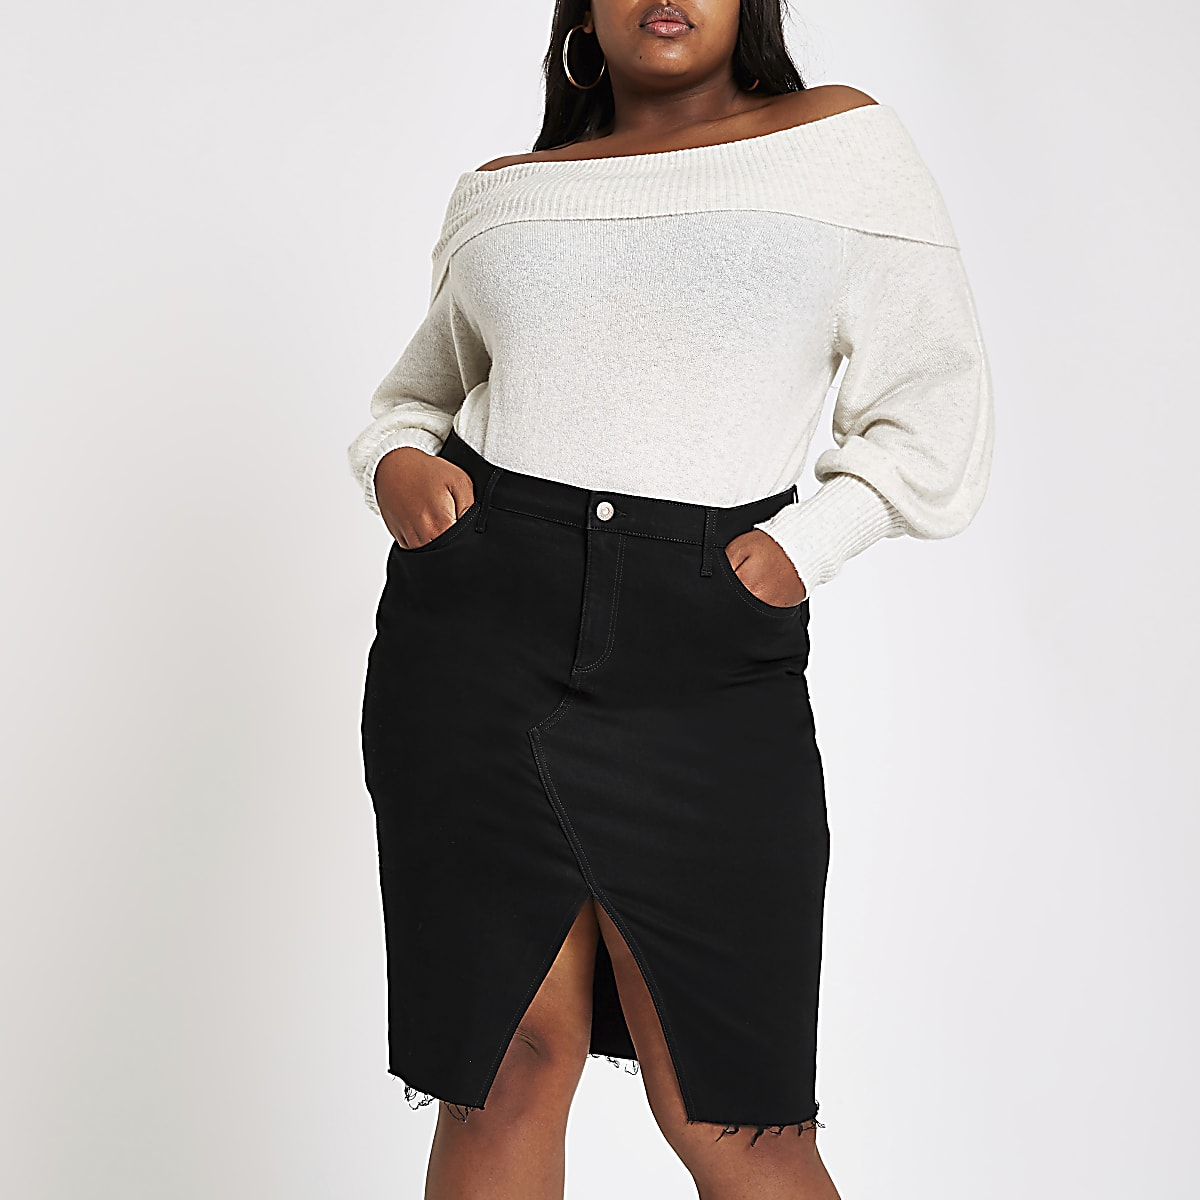 3dab4157b8 River Island Black Denim Pencil Skirt